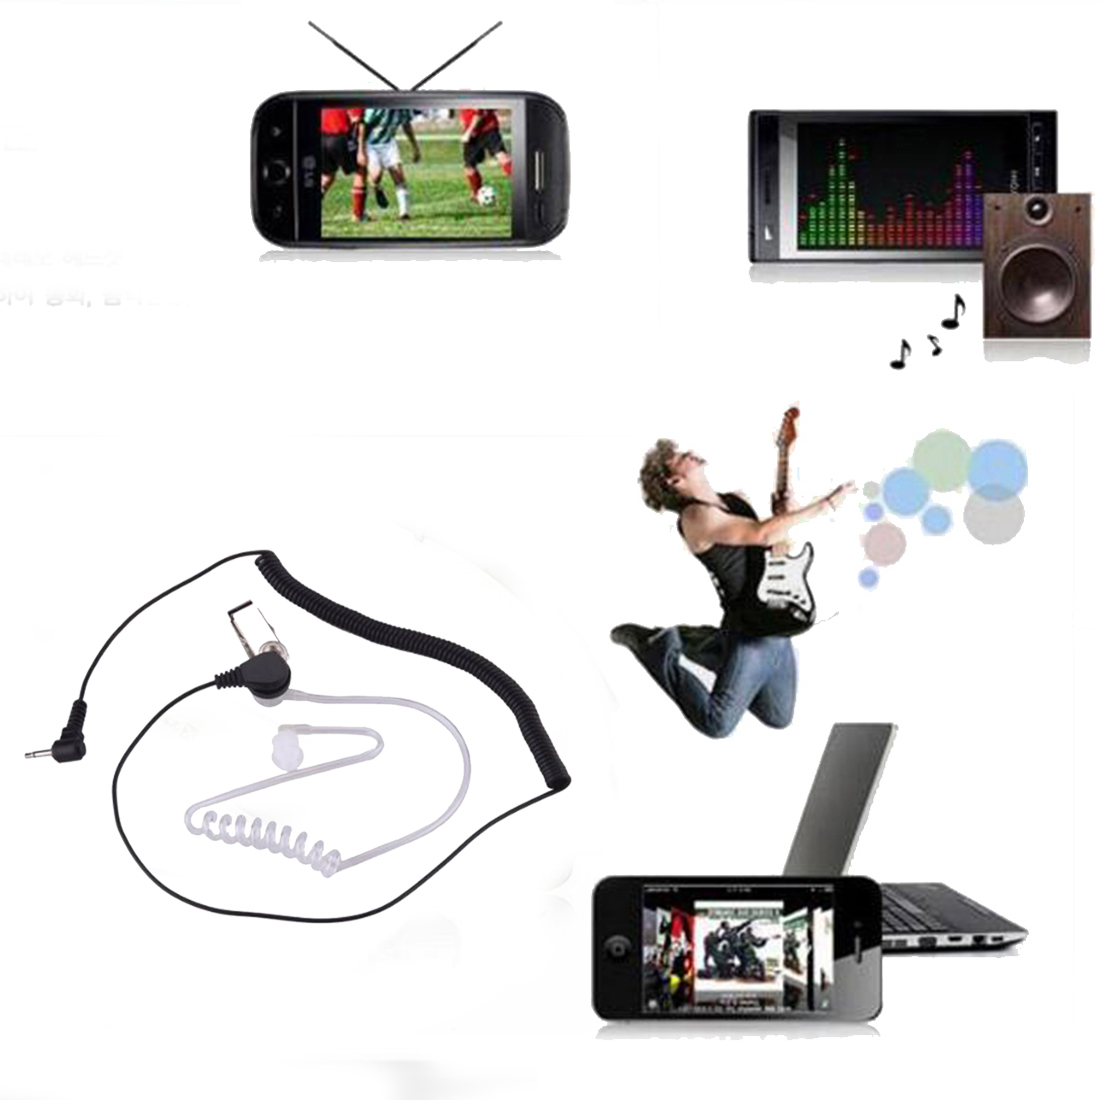 US $2 28 19% OFF|Marsnaska Hot 2 5mm Security Acoustic Tube Earpiece  Professional Headset Mic 1 Pin for Ham Radio Wholesale-in Earphones from  Consumer